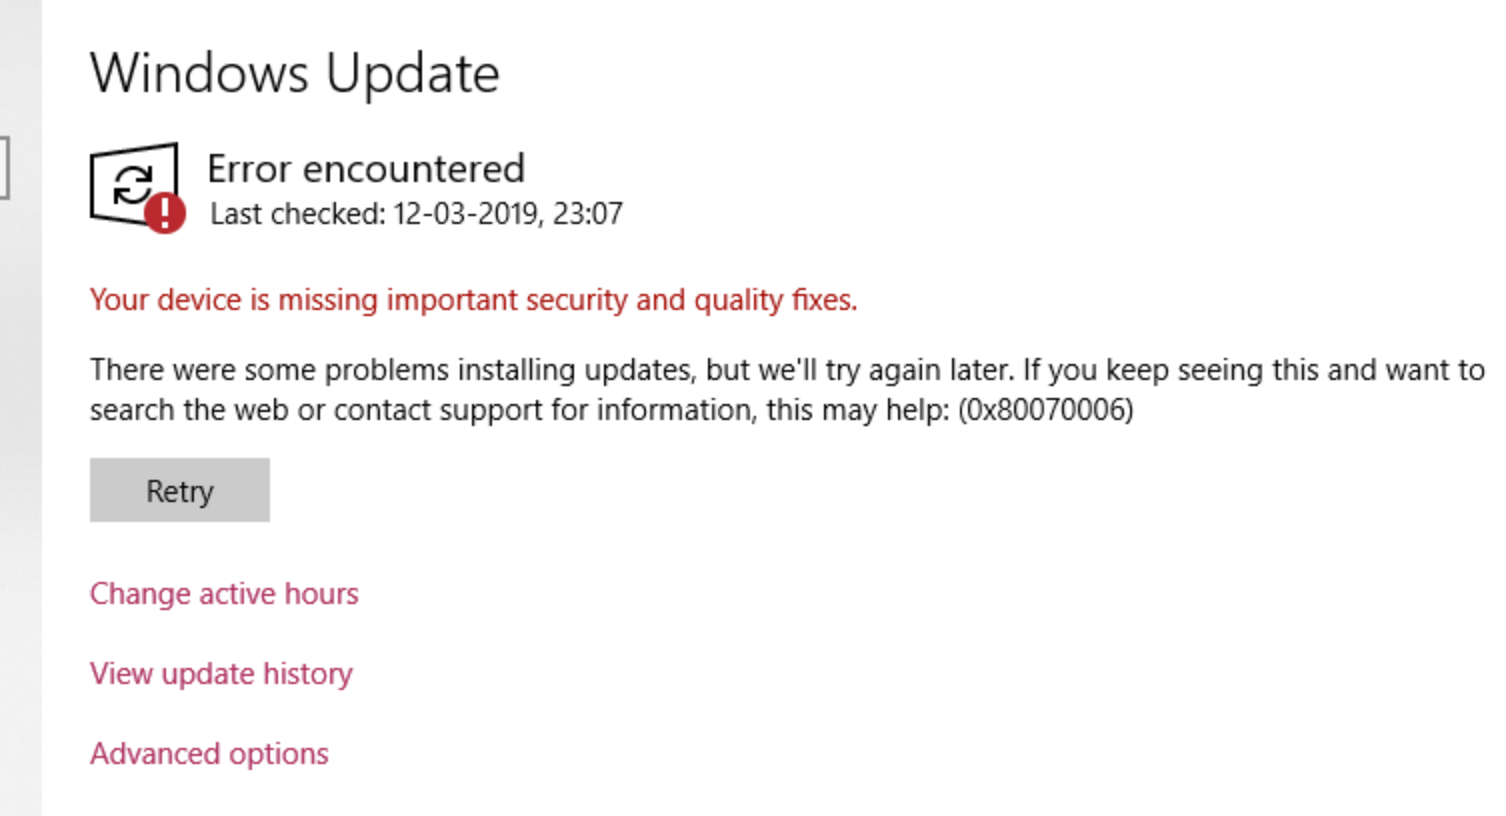 Windows Update Error encountered Your device is missing important security and quality fixes. There were some problems installing updates, but we'll try again later. If you keep seeing this and want to search the web or contact support for information, this may help: (0x800700006)